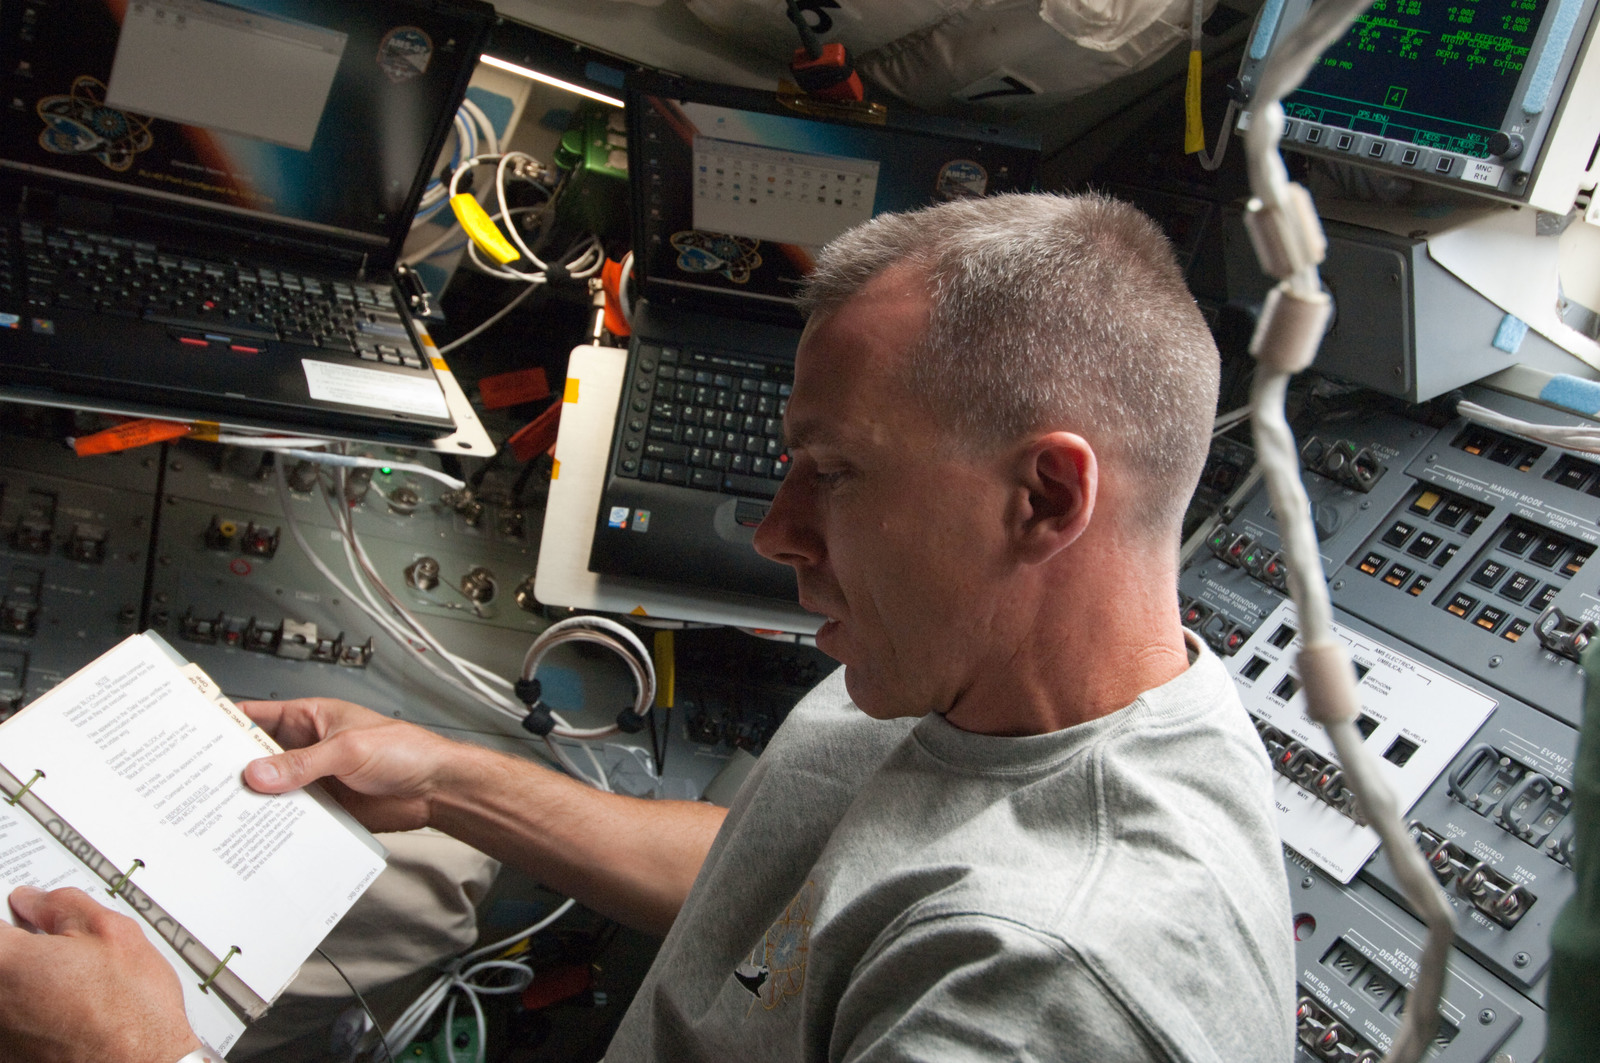 S134E005335 - STS-134 - View of STS-134 MS Feustel working on the Flight Deck